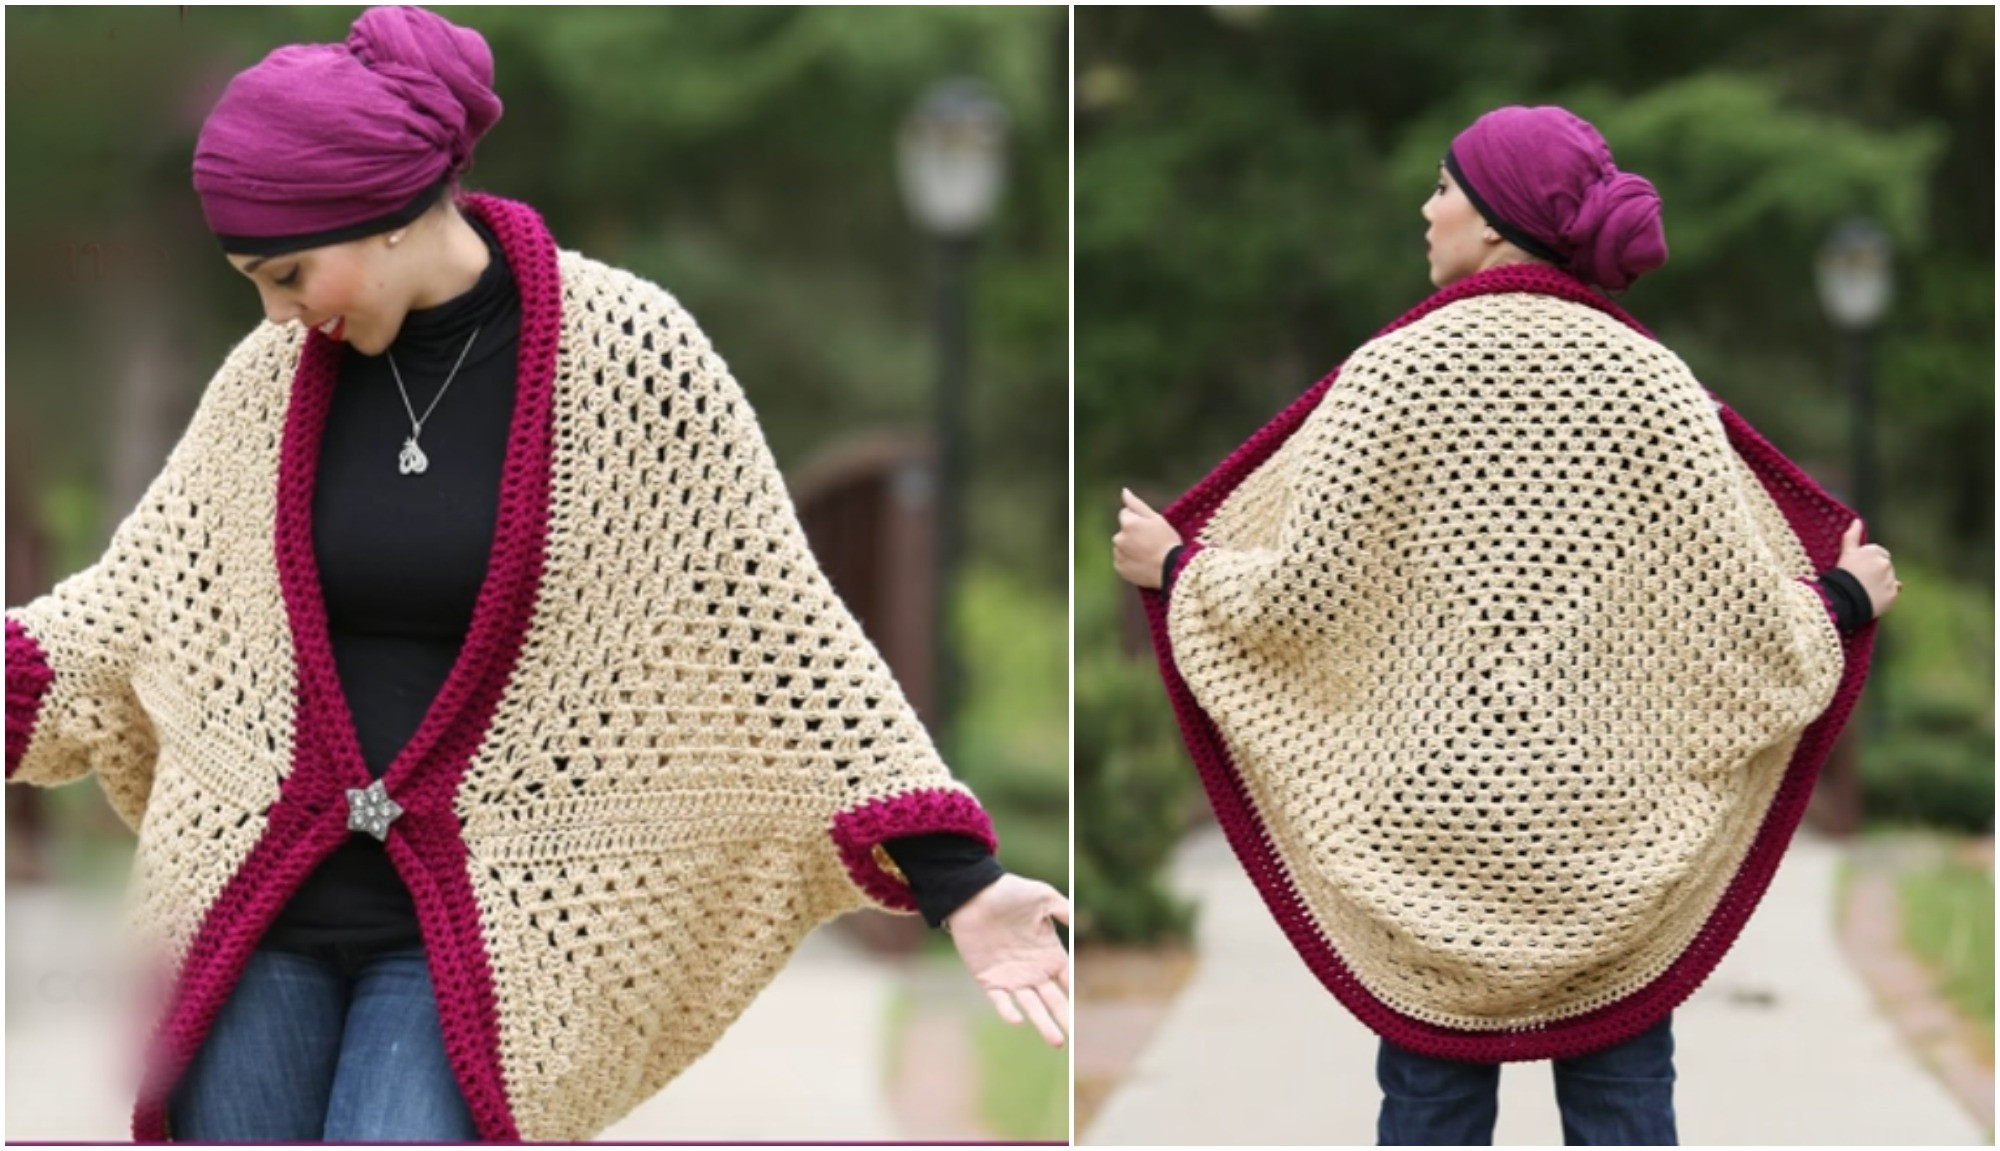 Awesome Granny Square Cocoon Sweater Cardigan – Crochet Ideas Crochet Cocoon Cardigan Of Charming 45 Pics Crochet Cocoon Cardigan